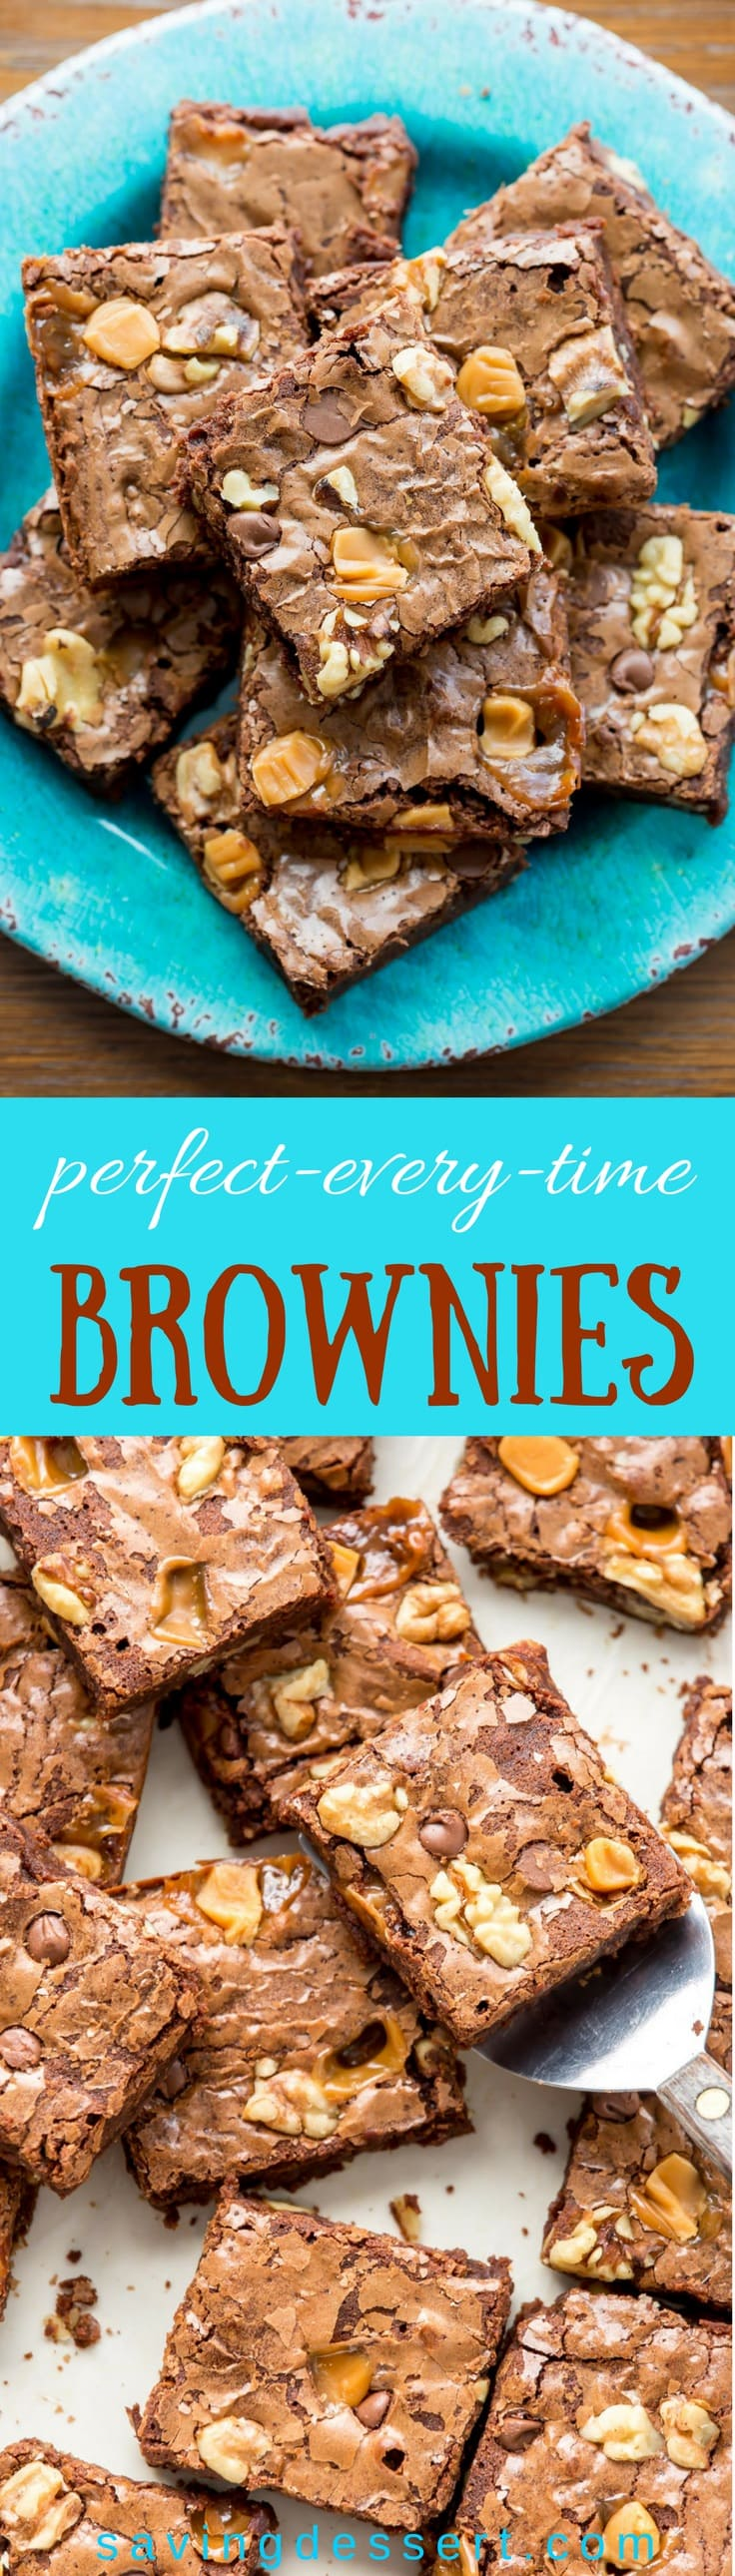 Perfect-Every-Time Brownies from scratch -an easy, rich, fudgy brownie that's perfect served warm from the oven with a scoop of ice cream or tucked in a lunchbox for a wonderful treat! #savingroomfordessert #brownies #easybrownies #homemadebrownies #browniesfromscratch #dessert